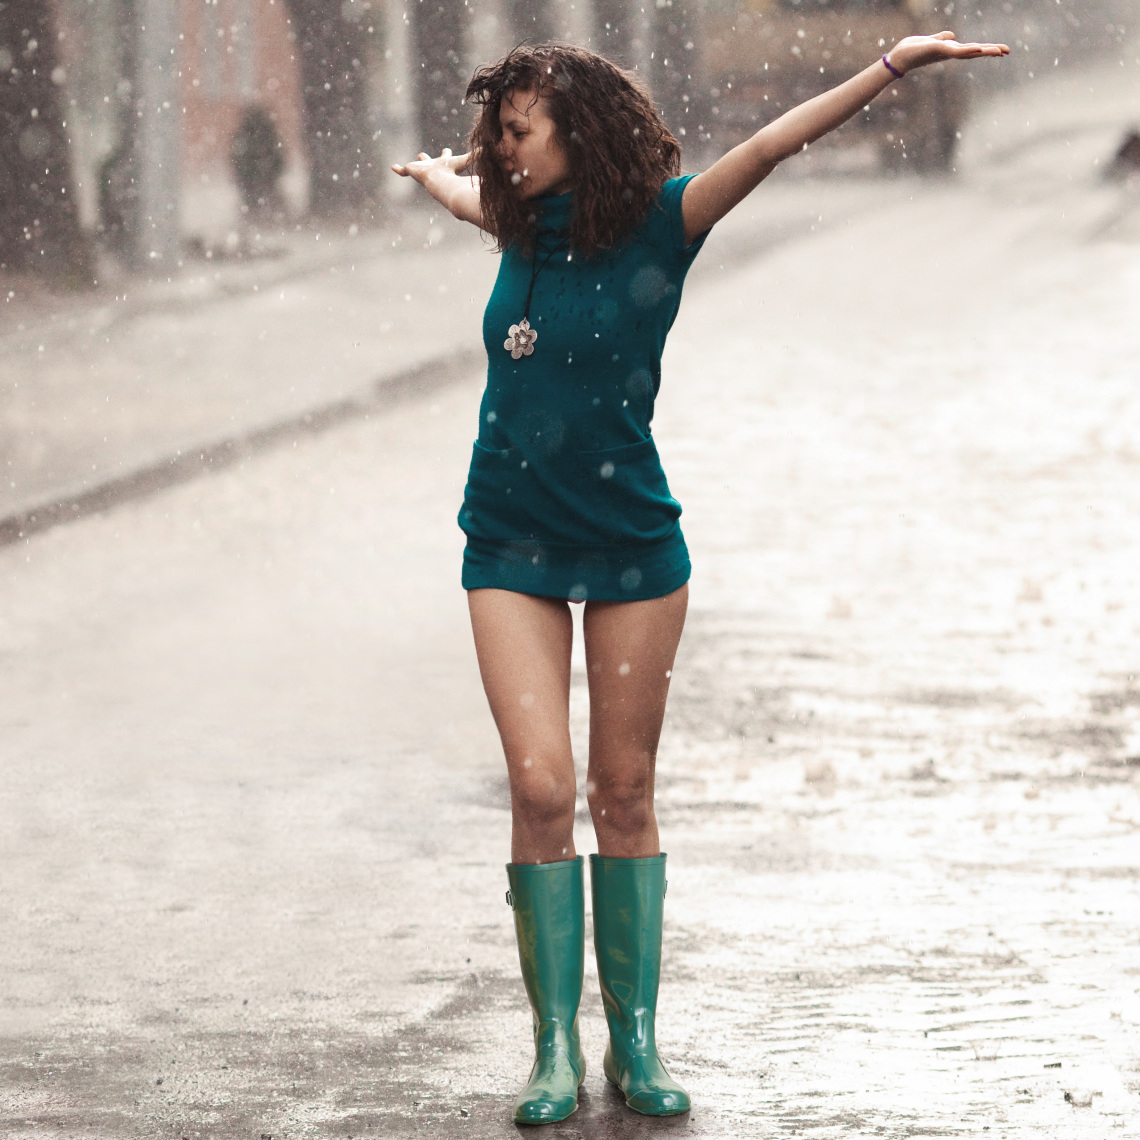 Woman under rain with rubberboots